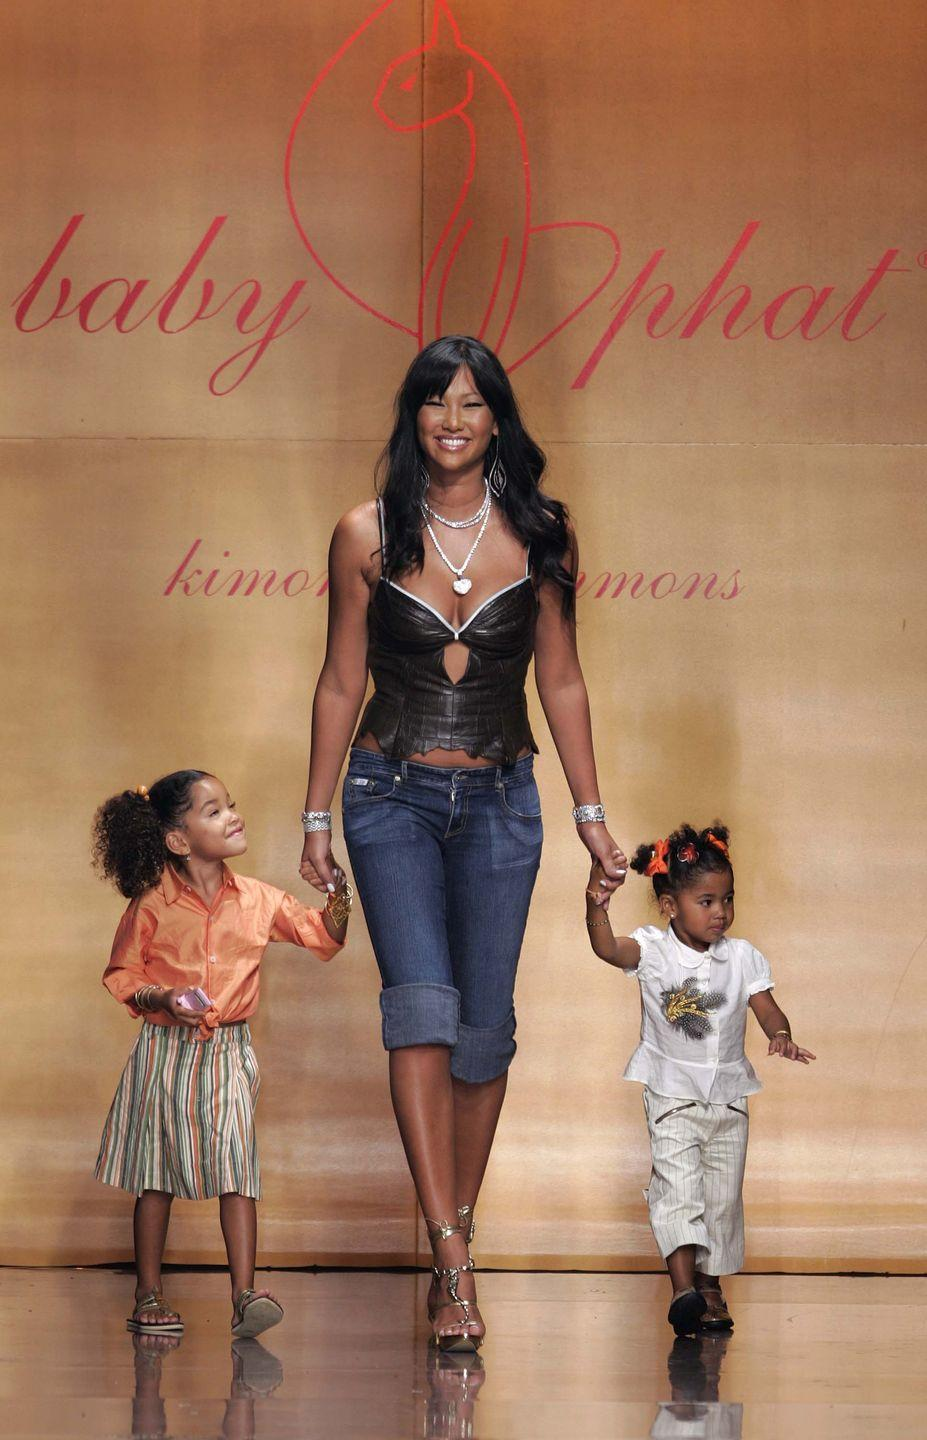 "<p>Kimora Lee Simmons began modeling at the age of 13, walking for some of the biggest names in fashion, and ultimately became a Chanel muse. She married music mogul Russell Simmons, who had his own menswear line, ""Phat Farm."" In 1999, under the ""Phat Fashions"" umbrella, Kimora Lee Simmons created ""Baby Phat"" to give women a much-needed voice in the booming streetwear industry. Baby Phat is a brand that defined fashion in the aughts. The label offered short mini skirts, low rise jeans, slinky crop tops, and of course the bedazzled curvy cat logo inspired by Kimora's cat Max. She democratized fashion with her belief that ""no matter your size or heritage, what united the Baby Phat girl was a desire to look good, feel great, and do it on a dollar."" Simmons became one of the first Black women to run a billion-dollar company. Nearly 10 years after shuttering, Baby Phat is back under the direction of her two teenage daughters.<br> </p>"